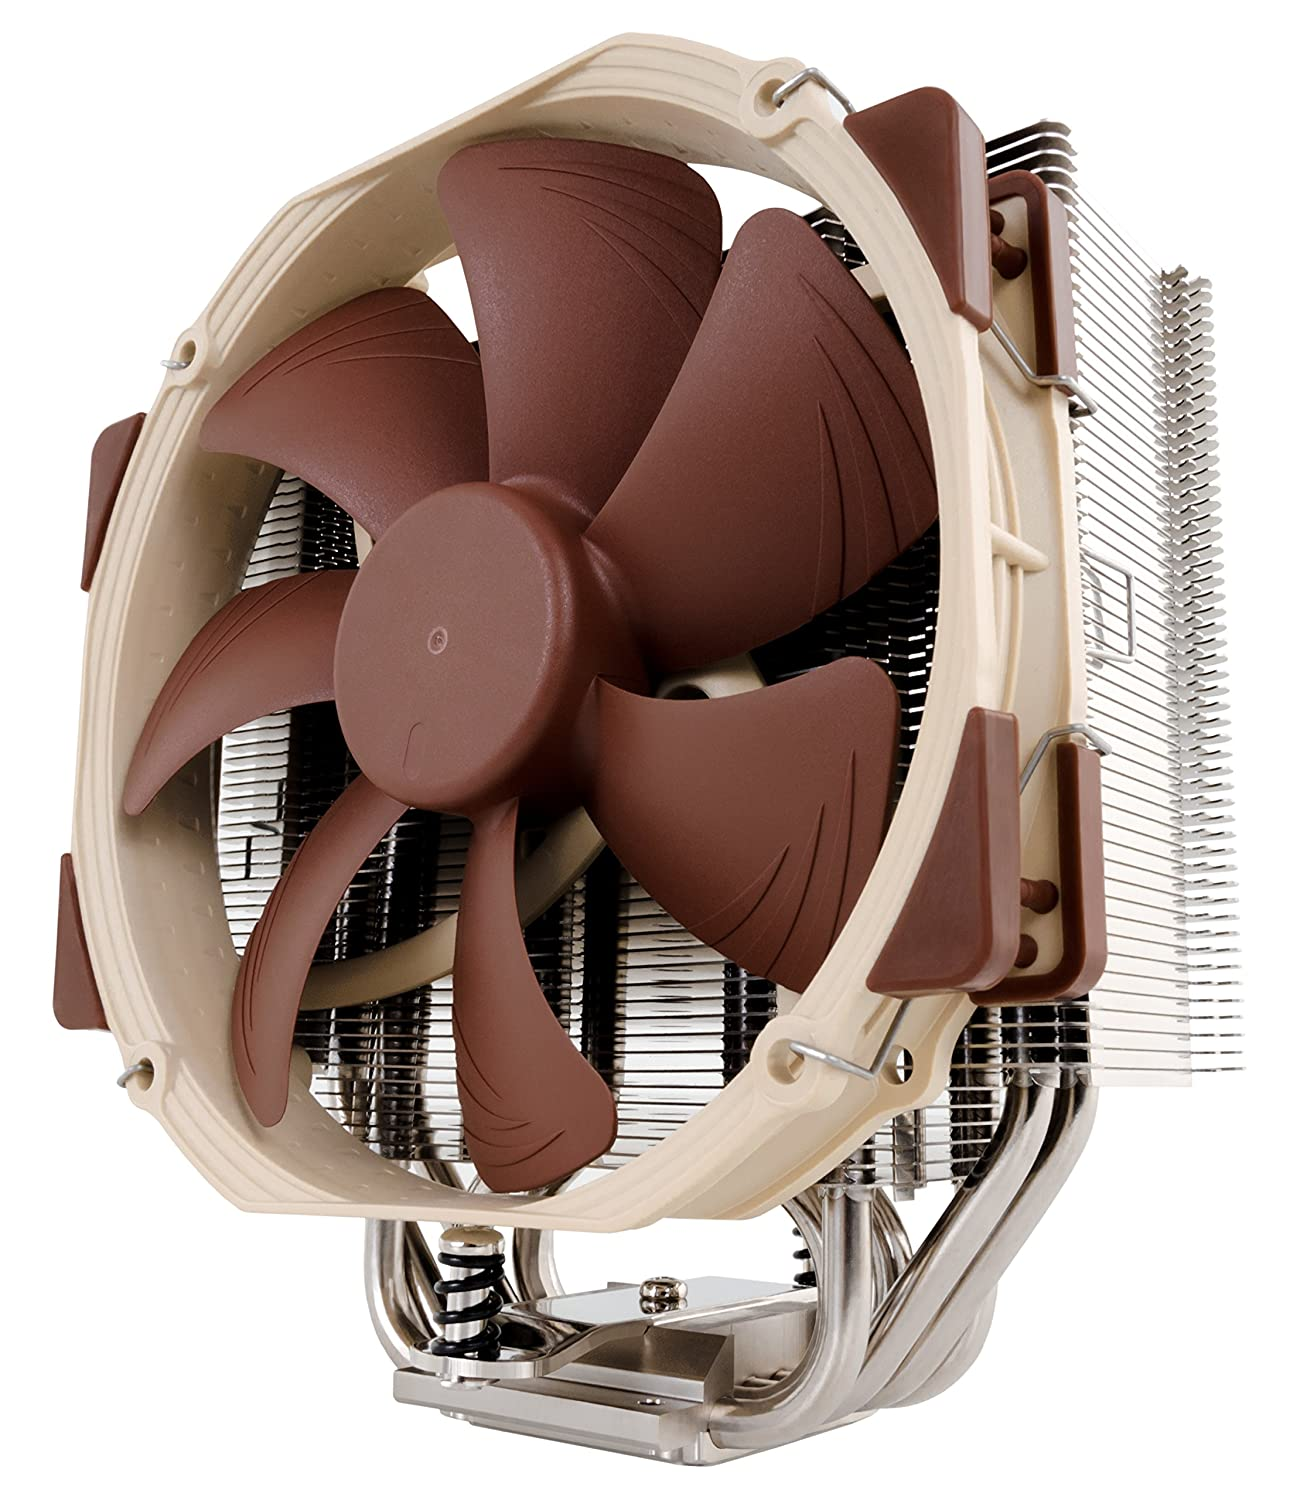 Noctua NH-U14S Premium CPU Cooler with NF-A15 140mm